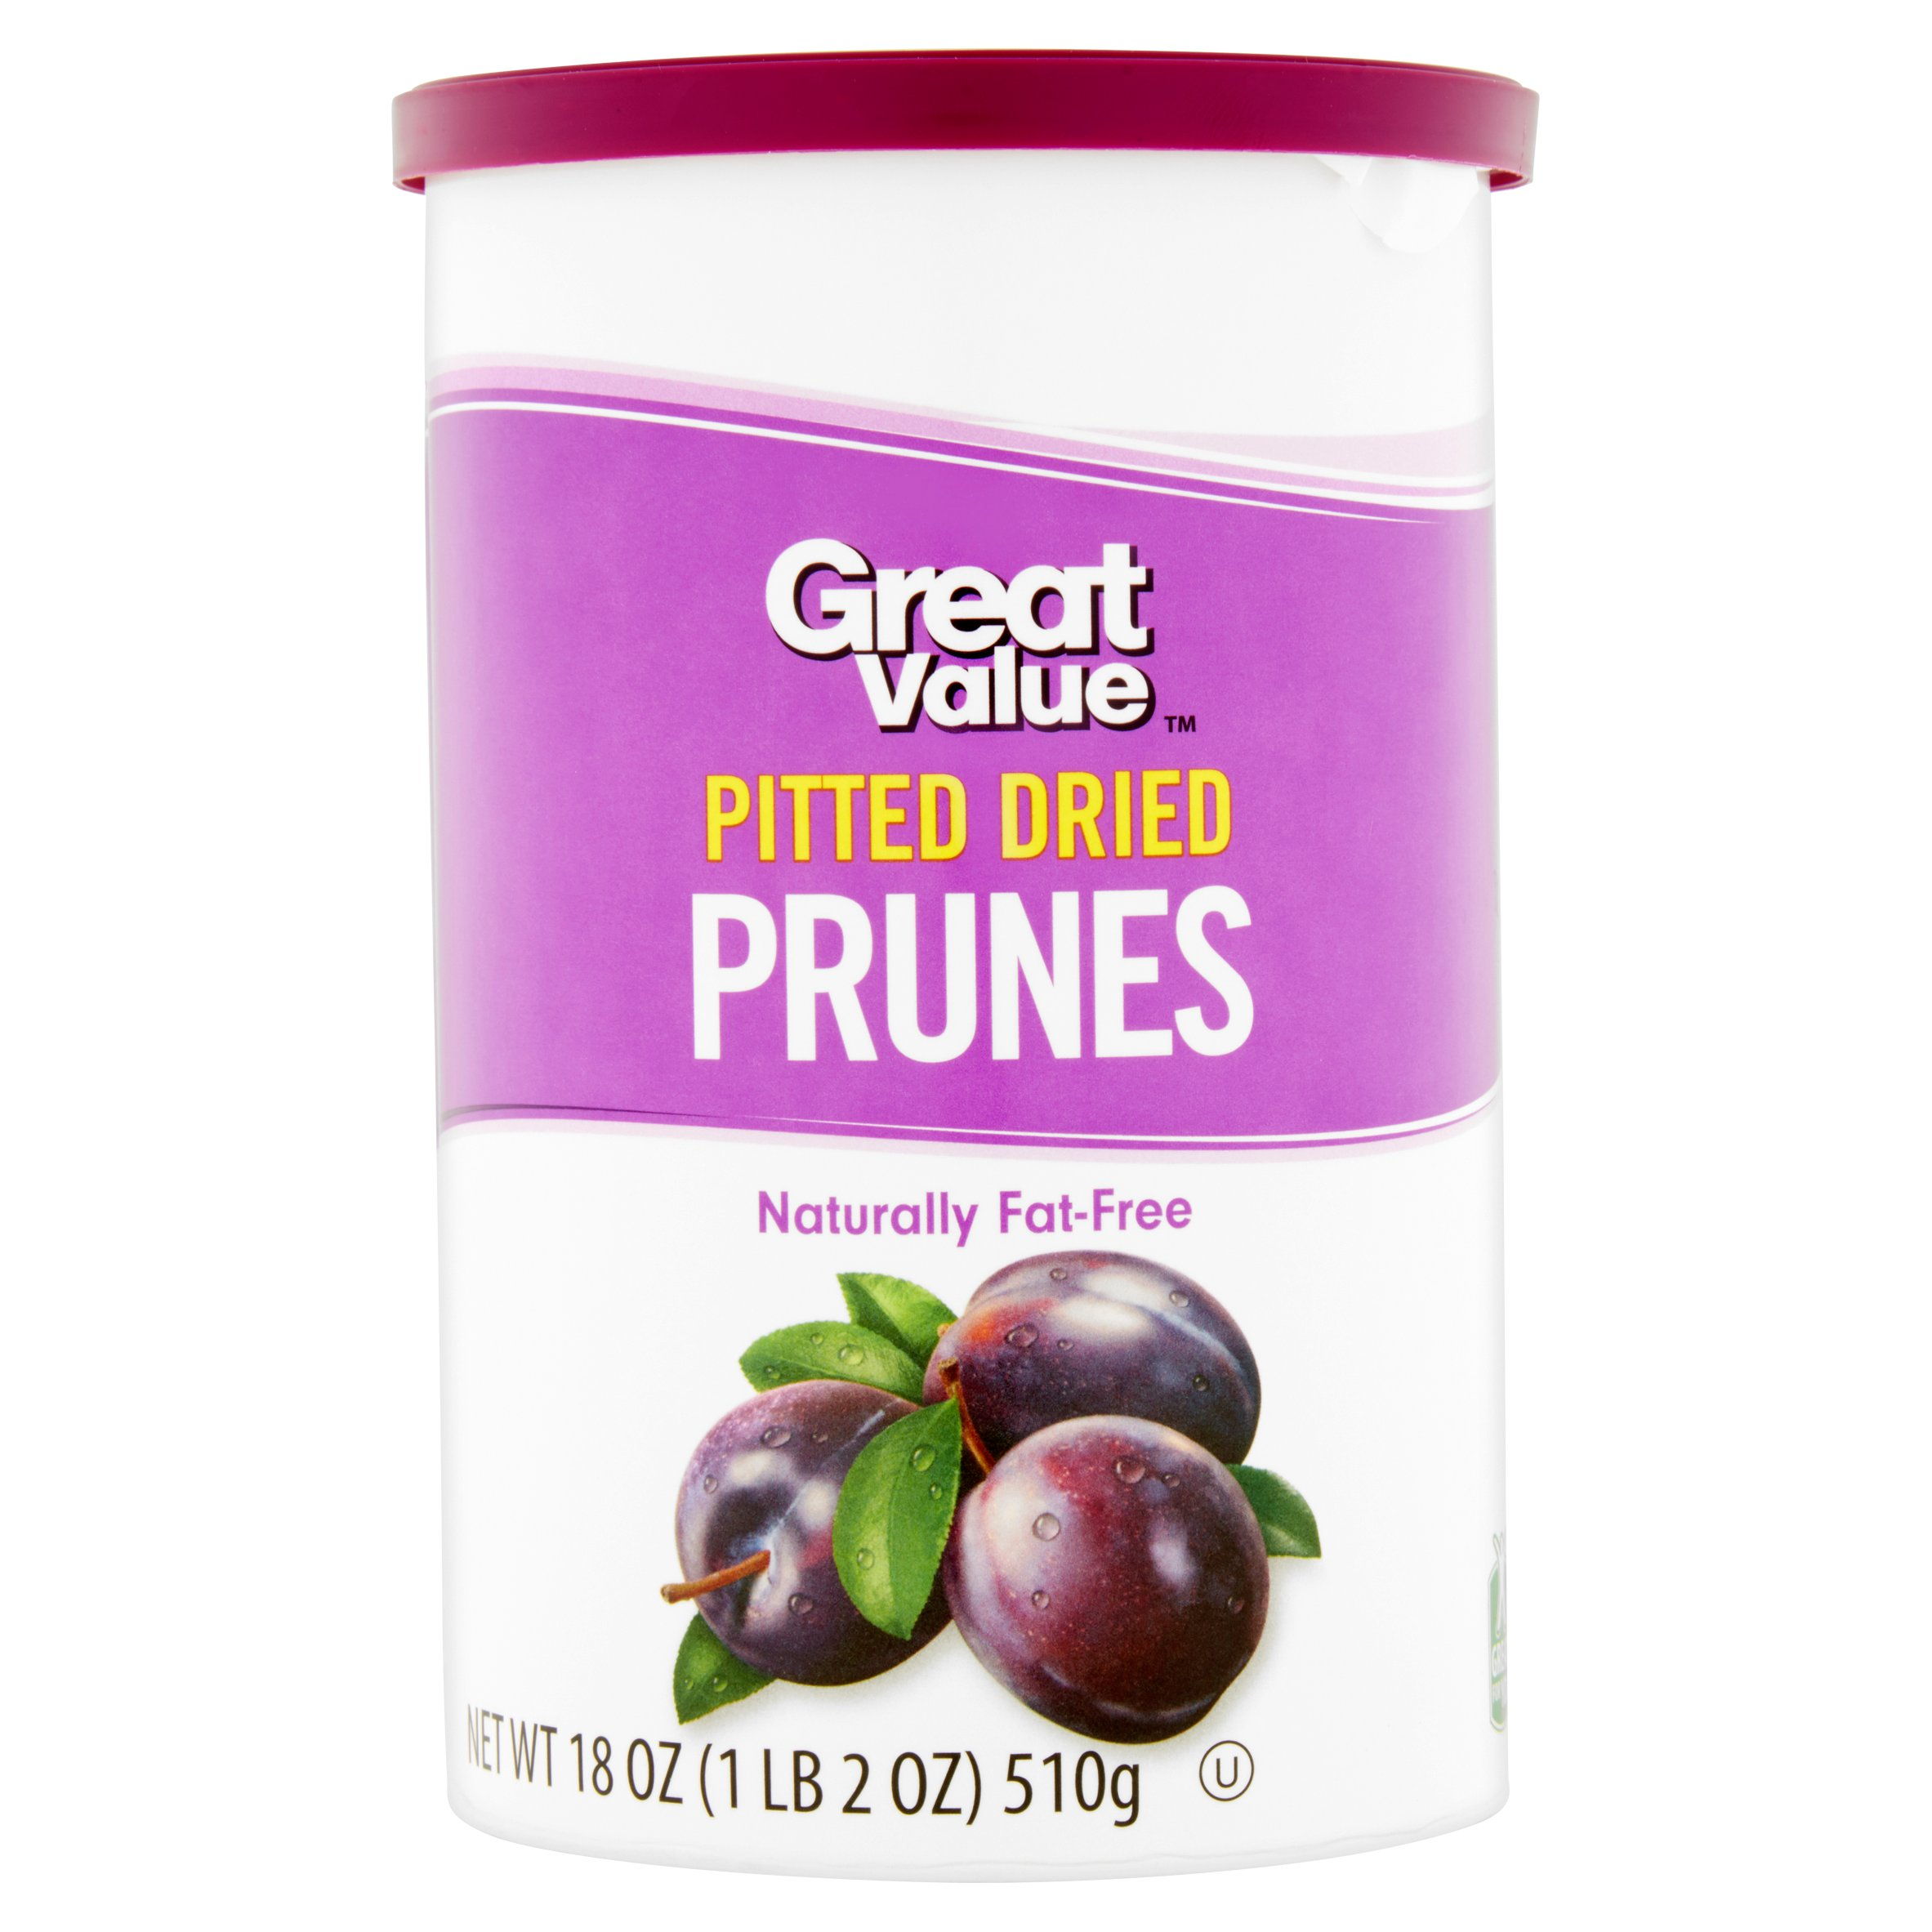 Great Value Pitted Dried Prunes, 18 oz